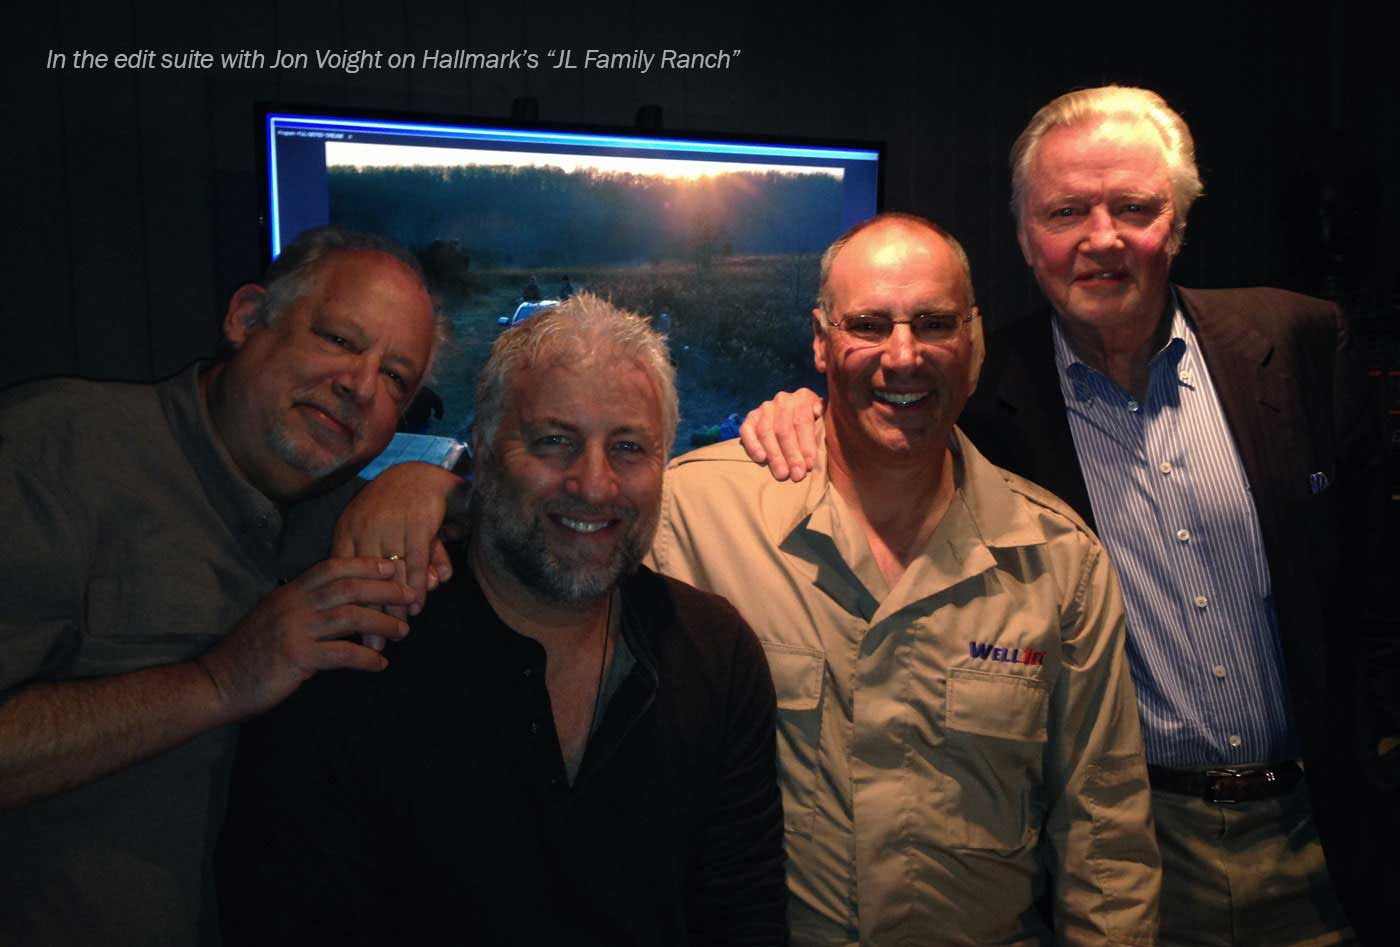 Dave Eichhorn_editing suite with Jon Voight.jpg